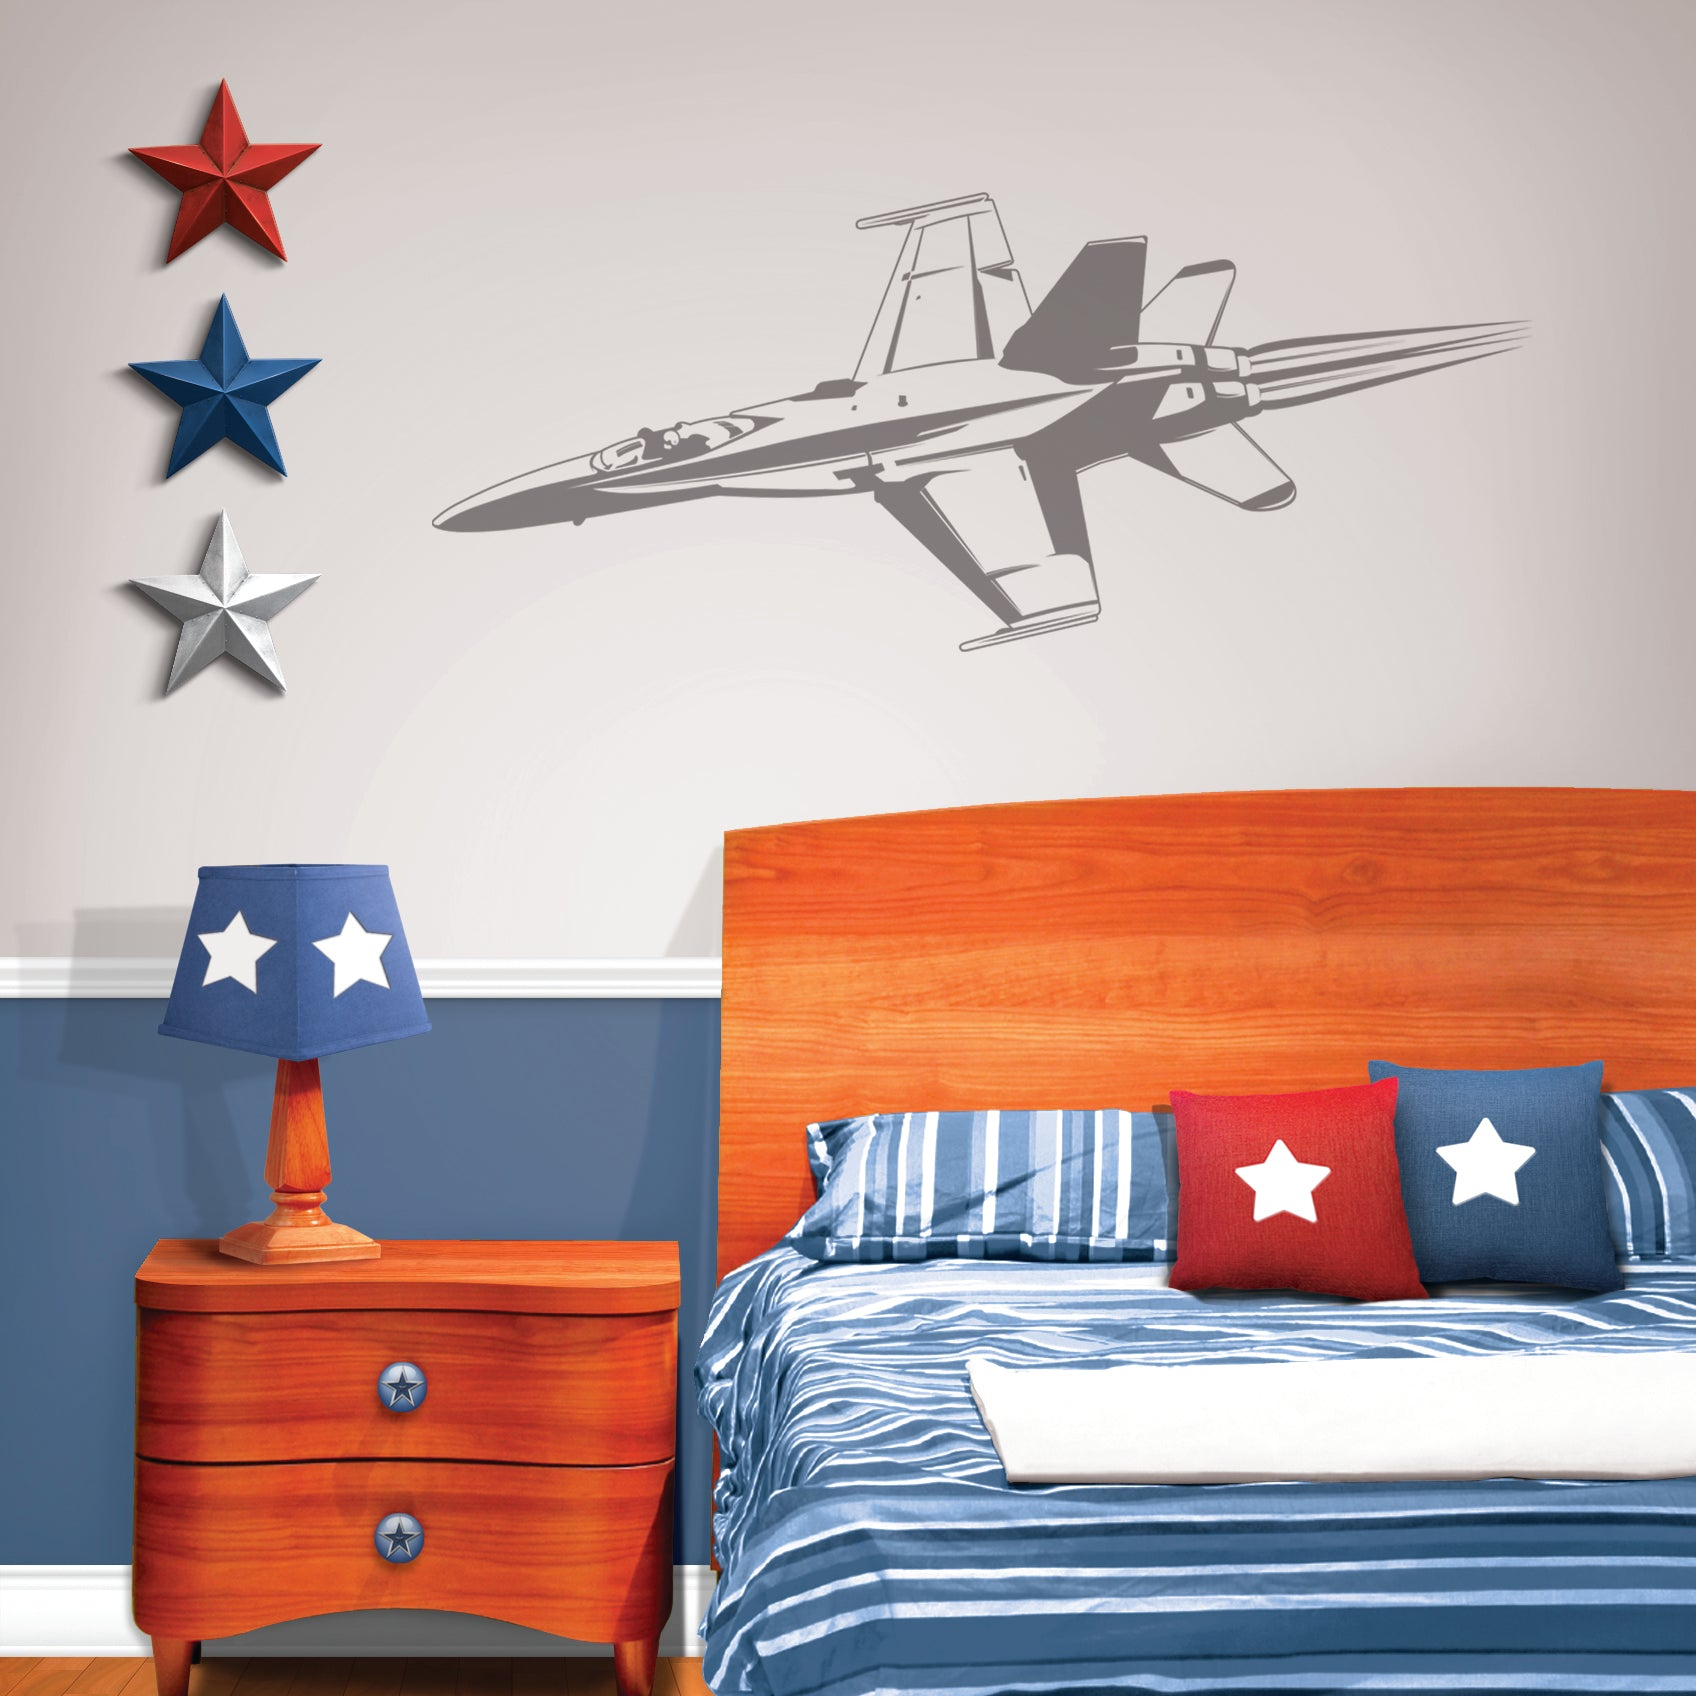 Camo Fighter Jet Sudden Shadow Wall Decal